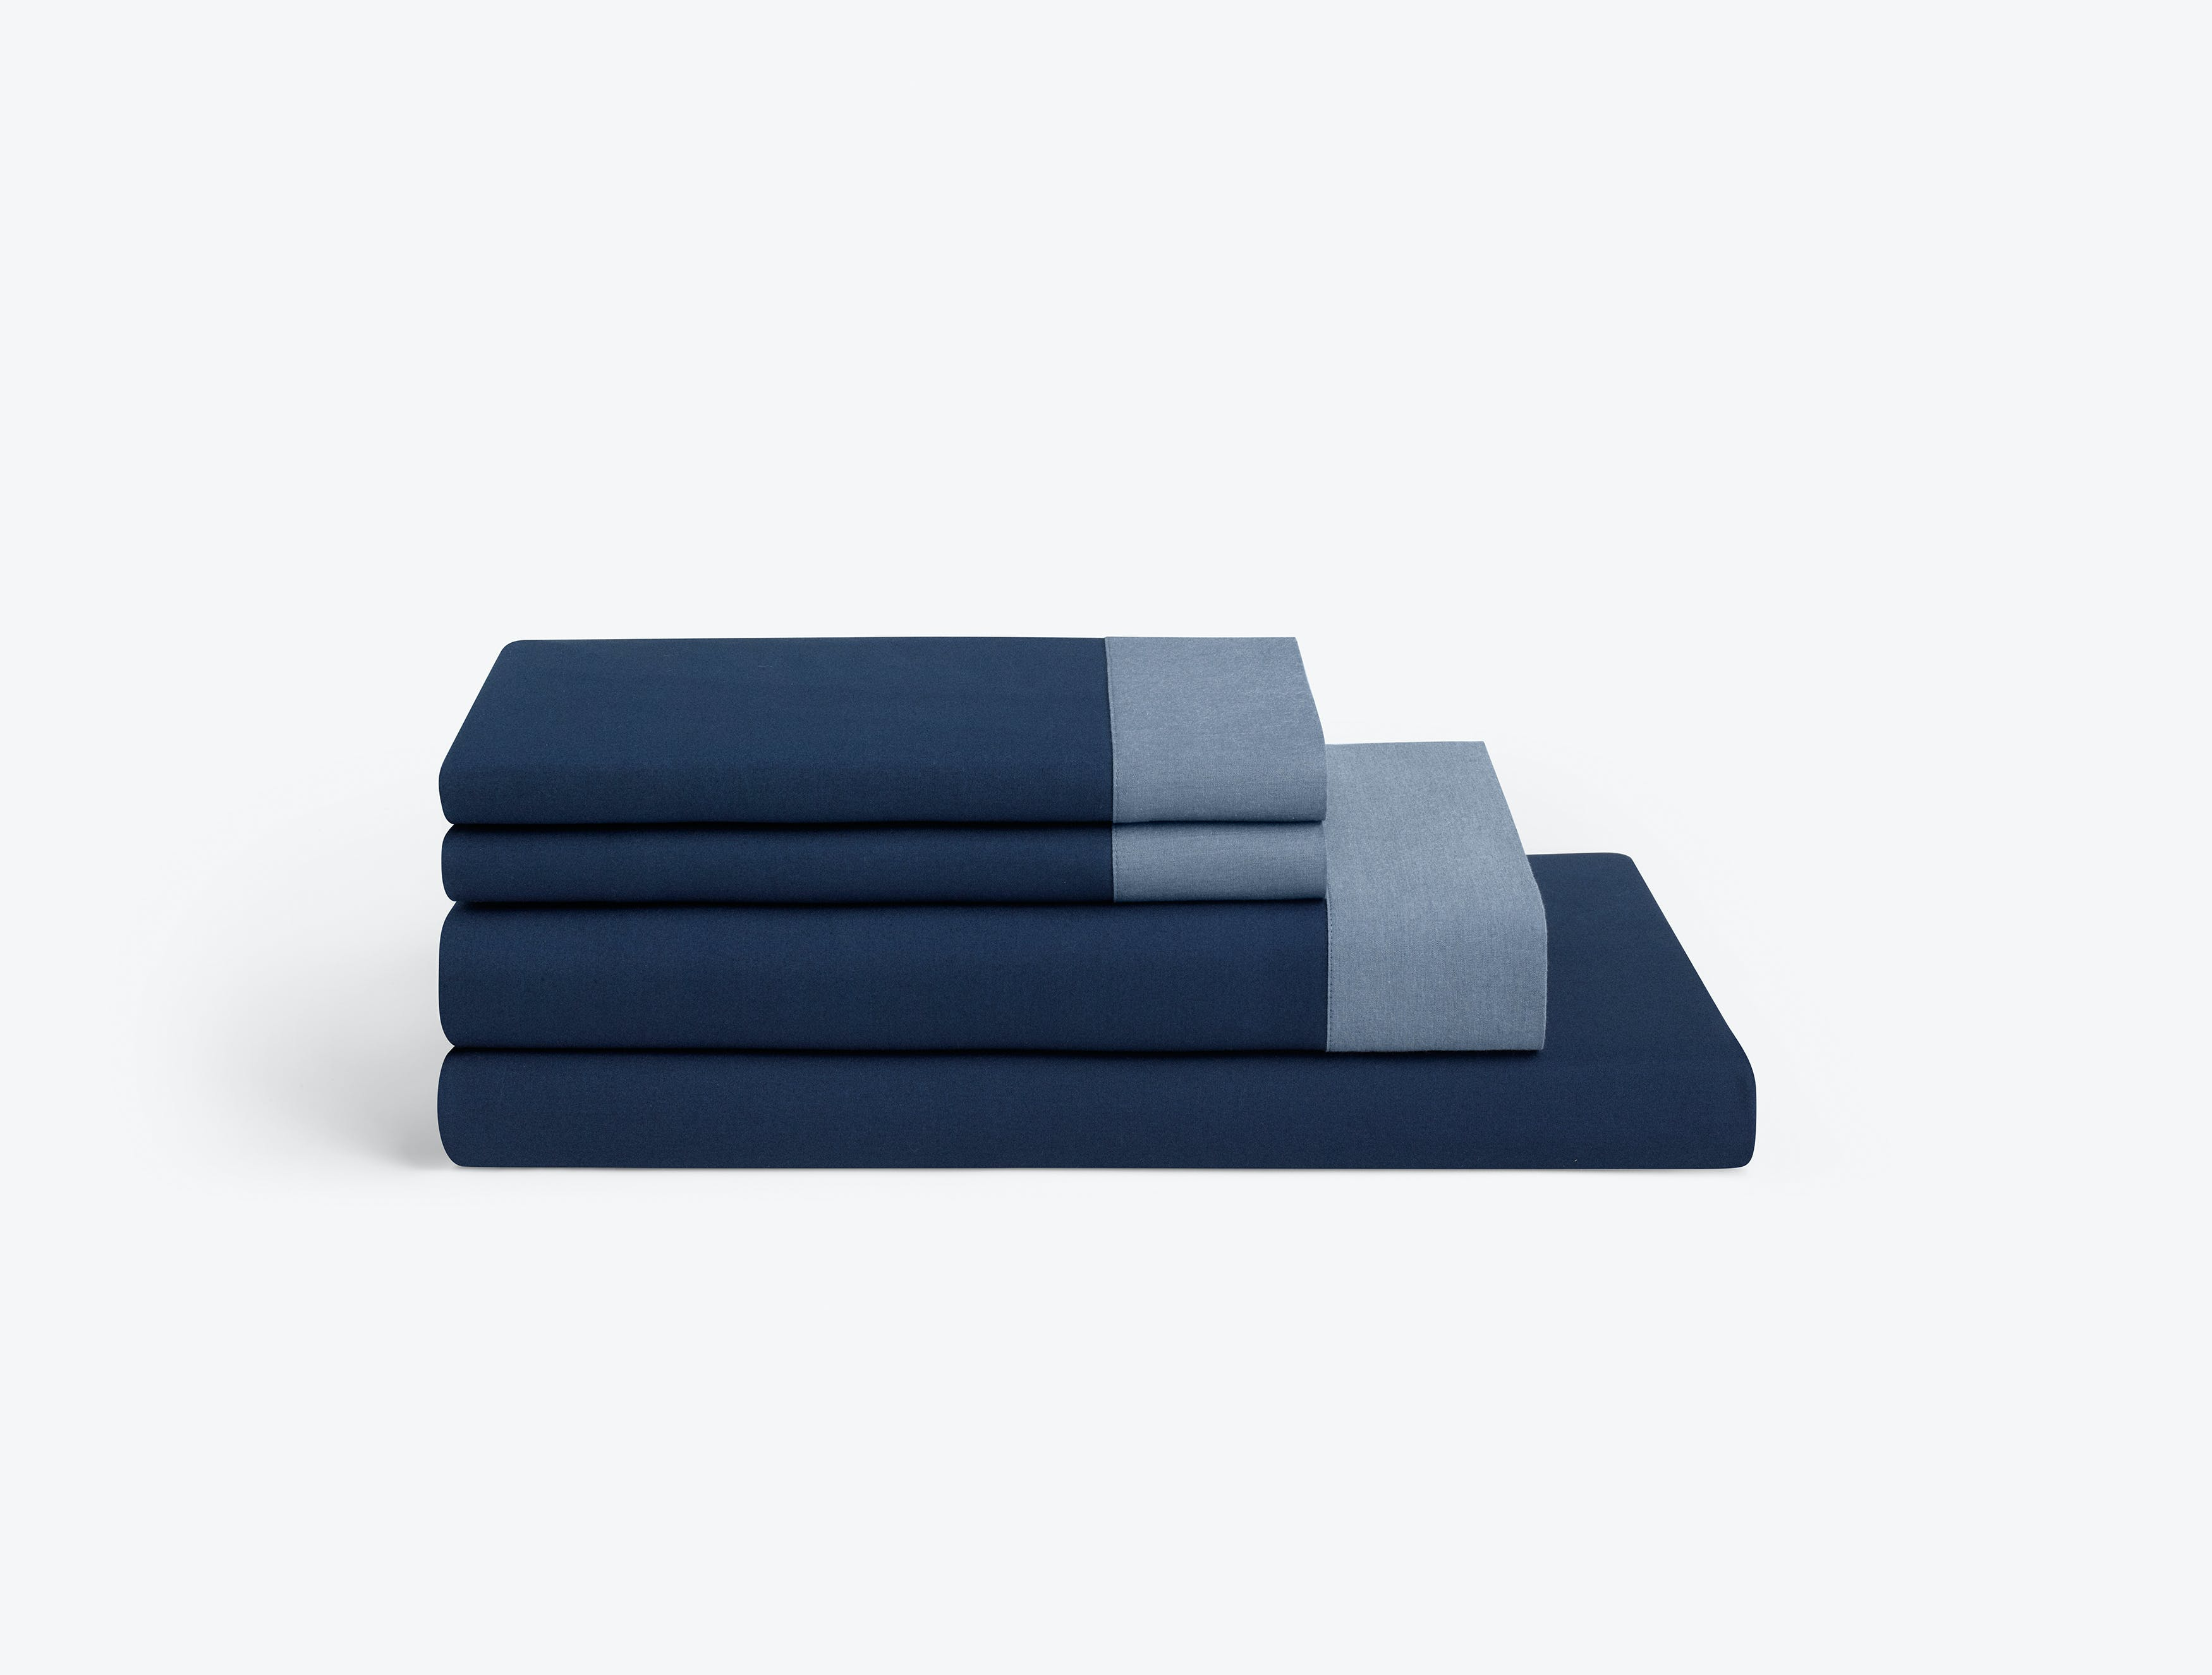 Casper Navy-Azure Sheets (Set)